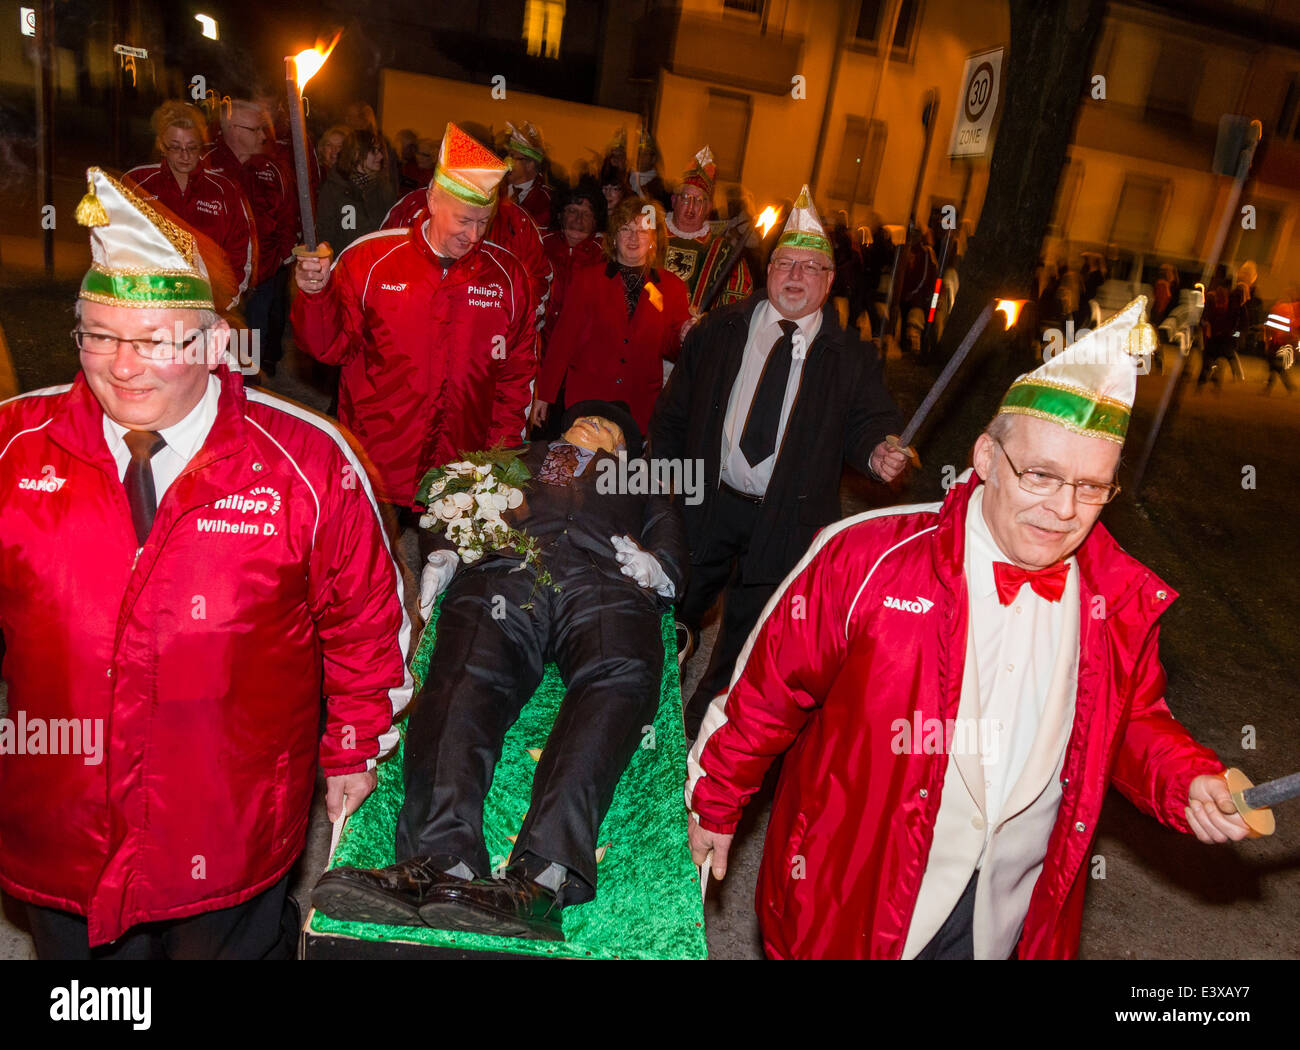 German carnival revelers in good mood carry the deceased Bacchus dummy to his cremation burial at the end of the - Stock Image